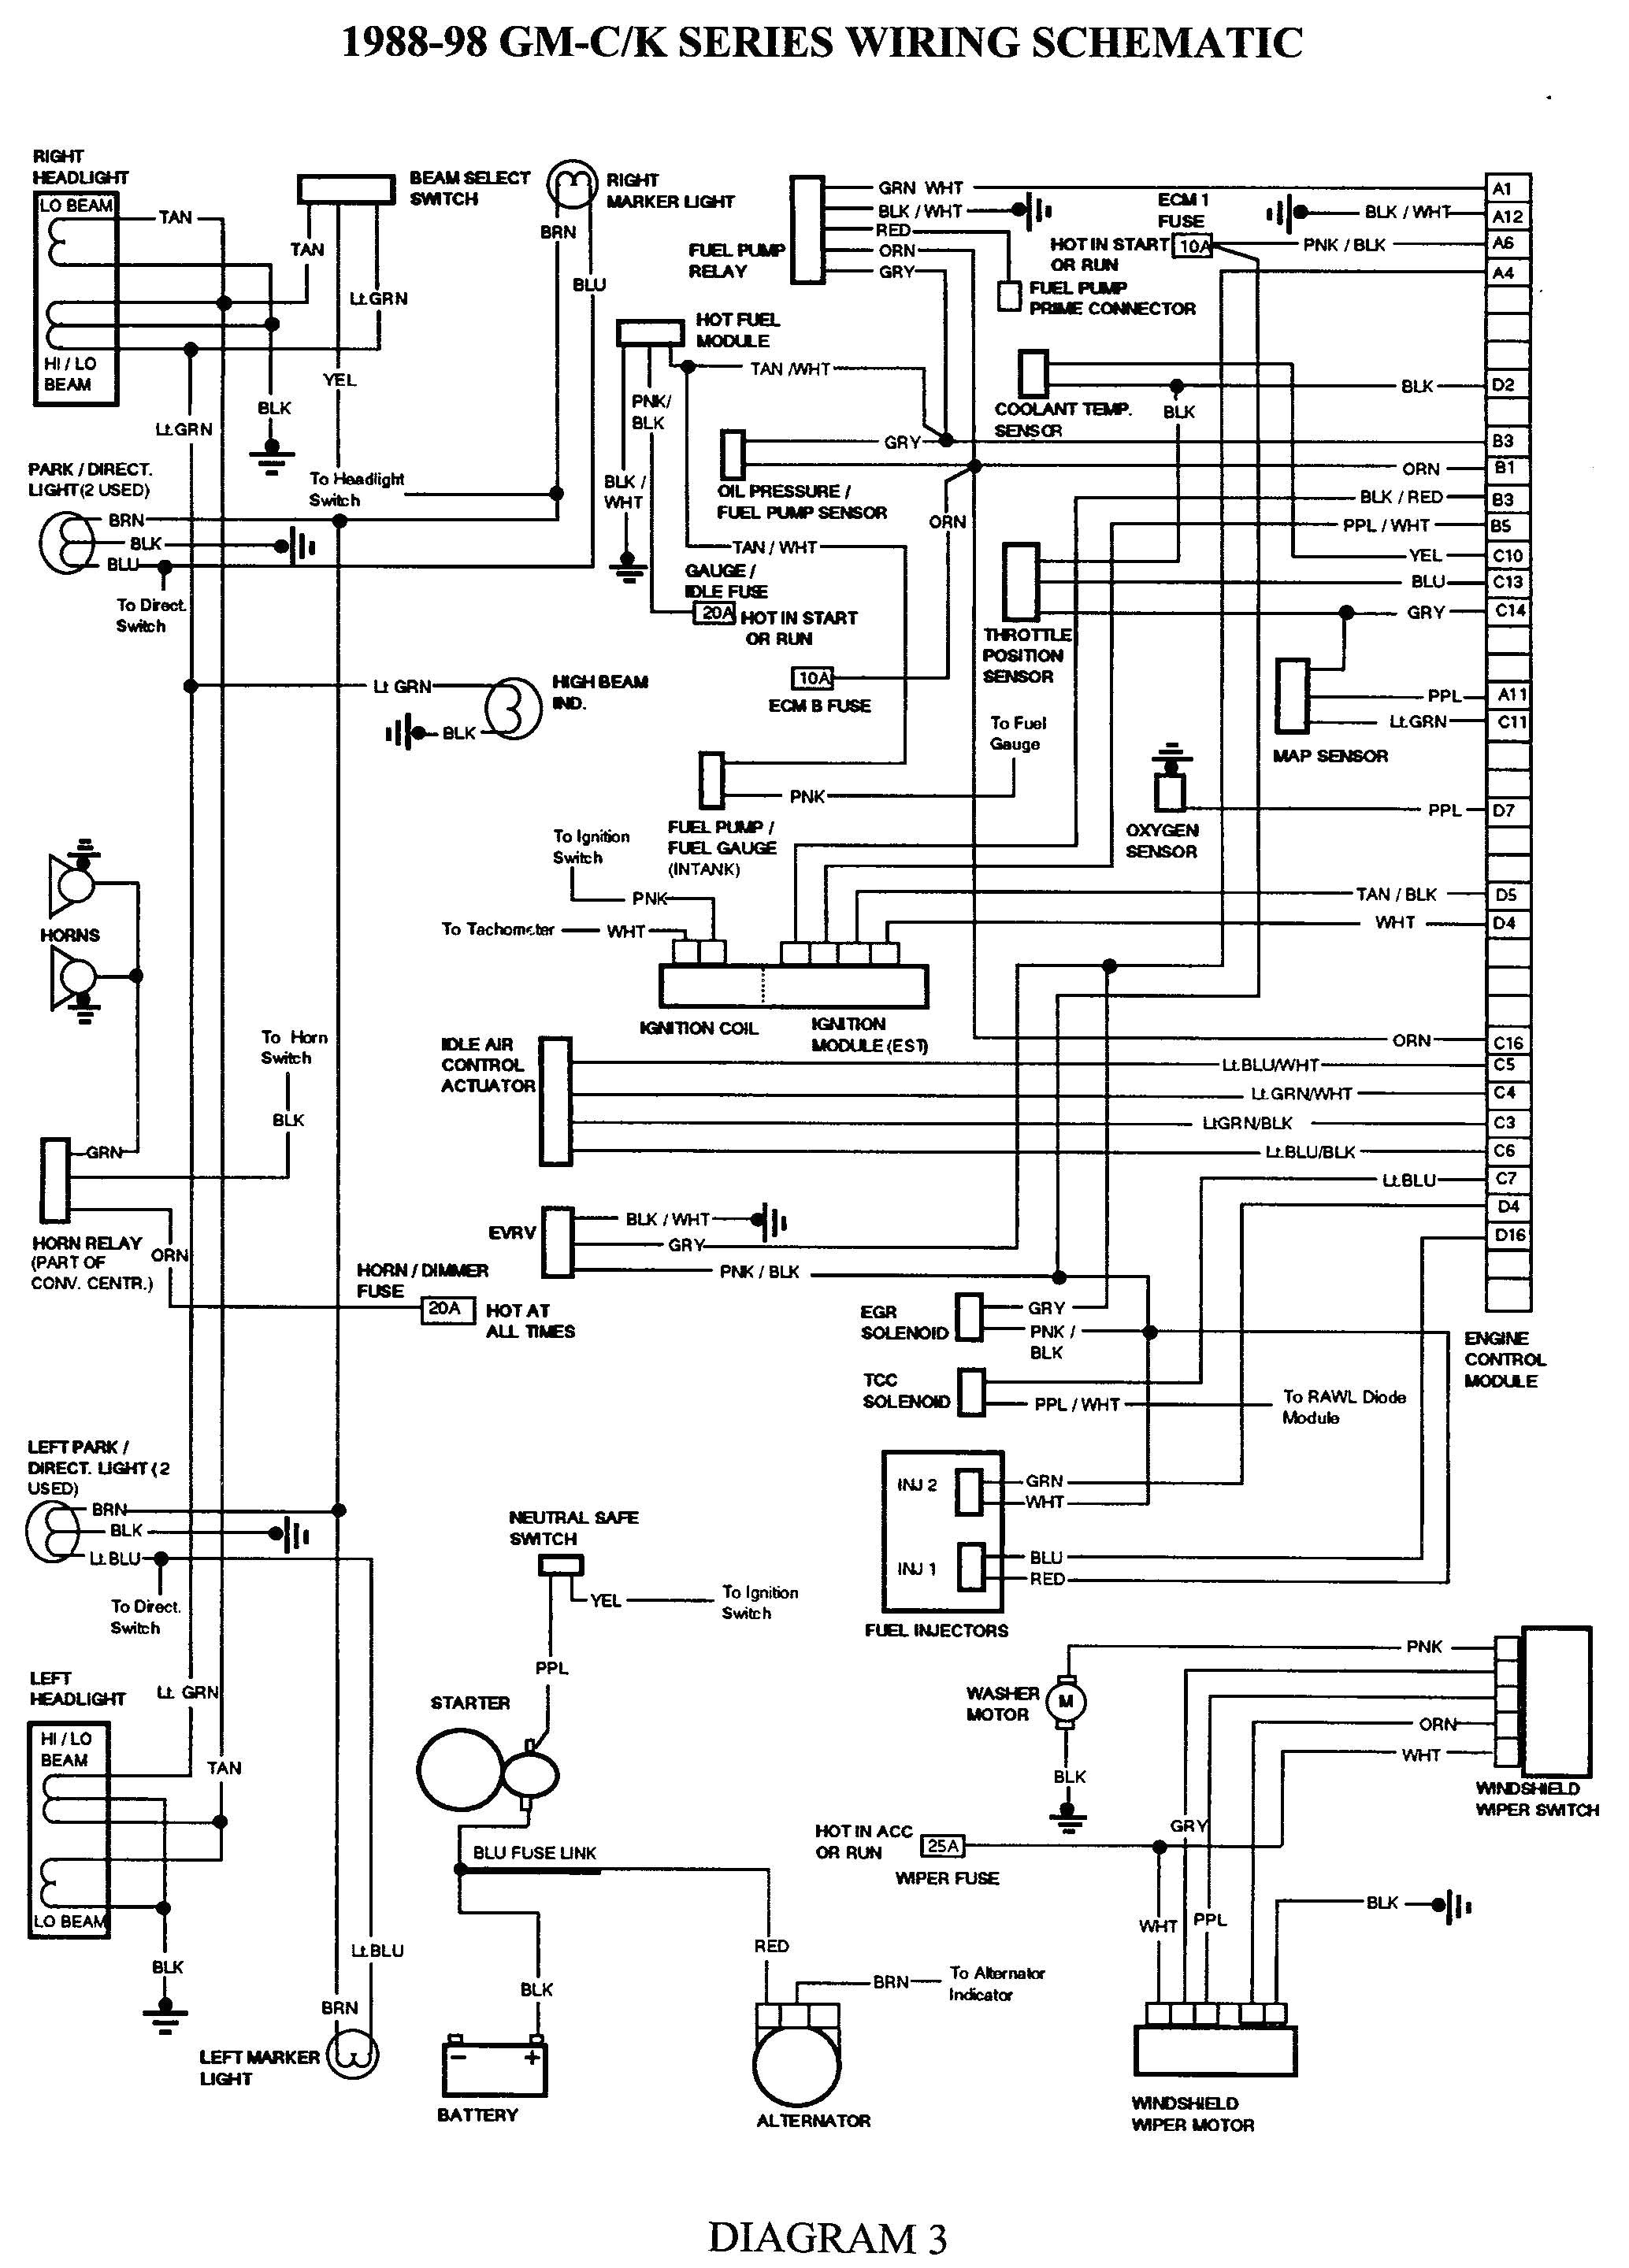 gmc truck wiring diagrams on gm wiring harness diagram 88 98 kc 88 chevy suburban gauge wire diagram